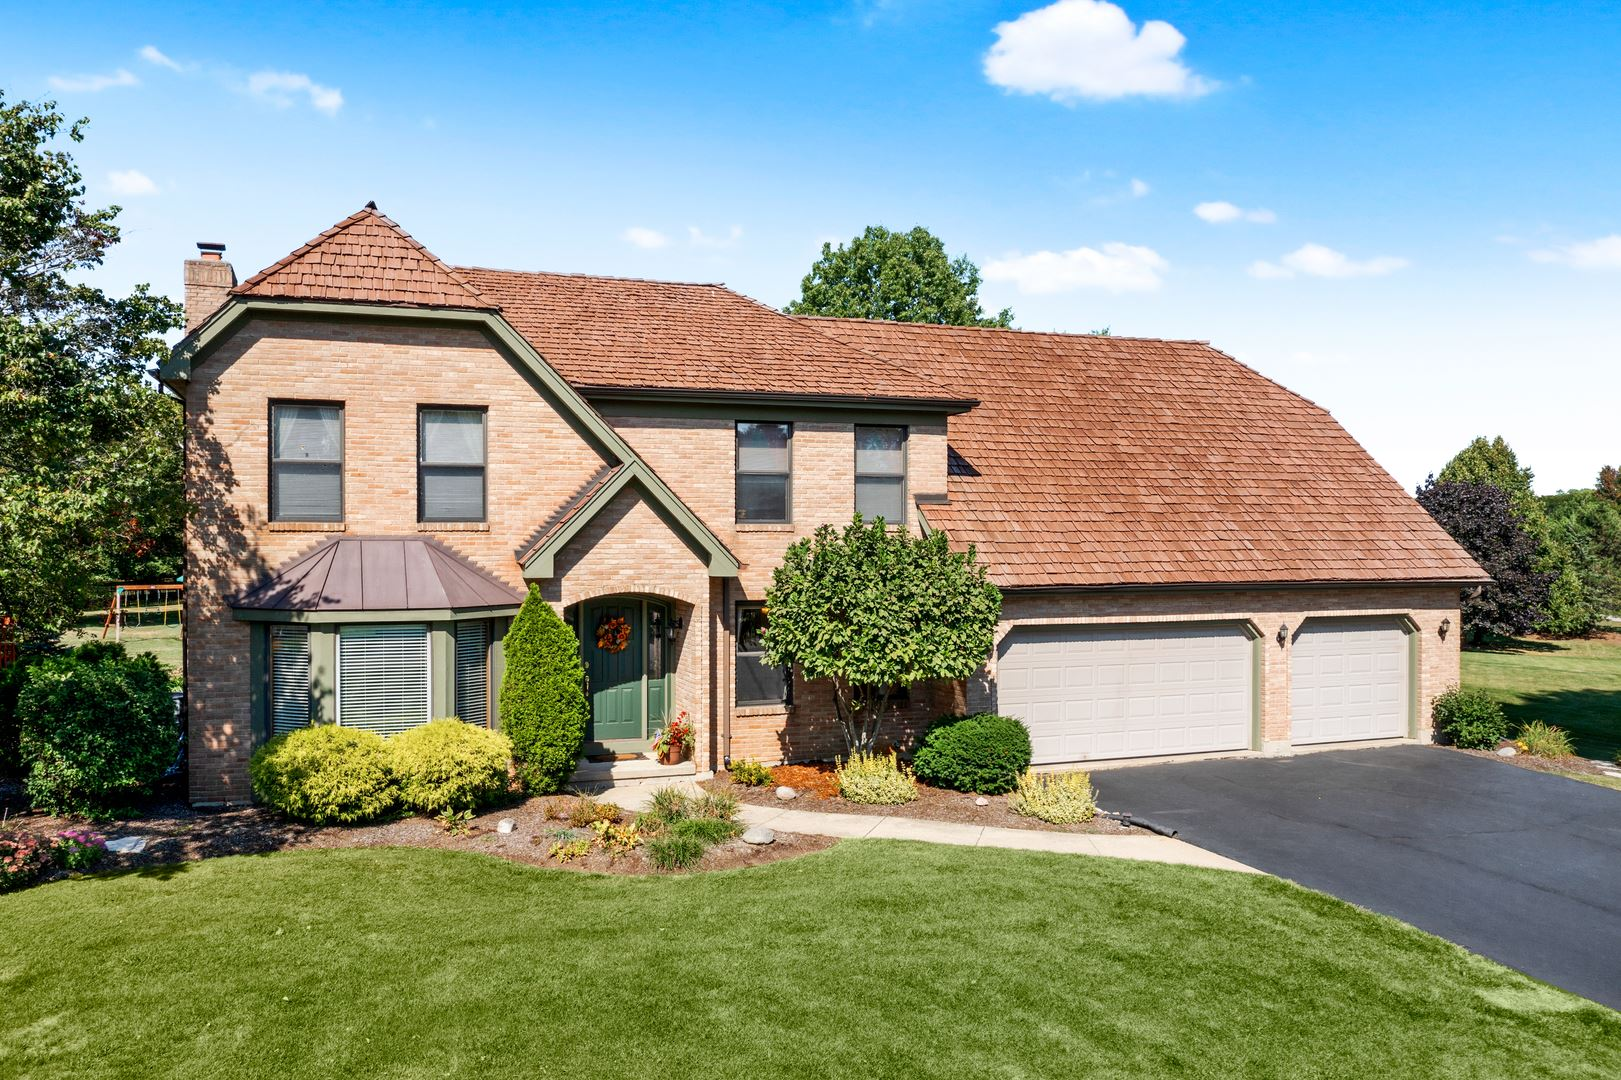 35w833 Parsons Road, Dundee, IL 60118 - #: 11250205